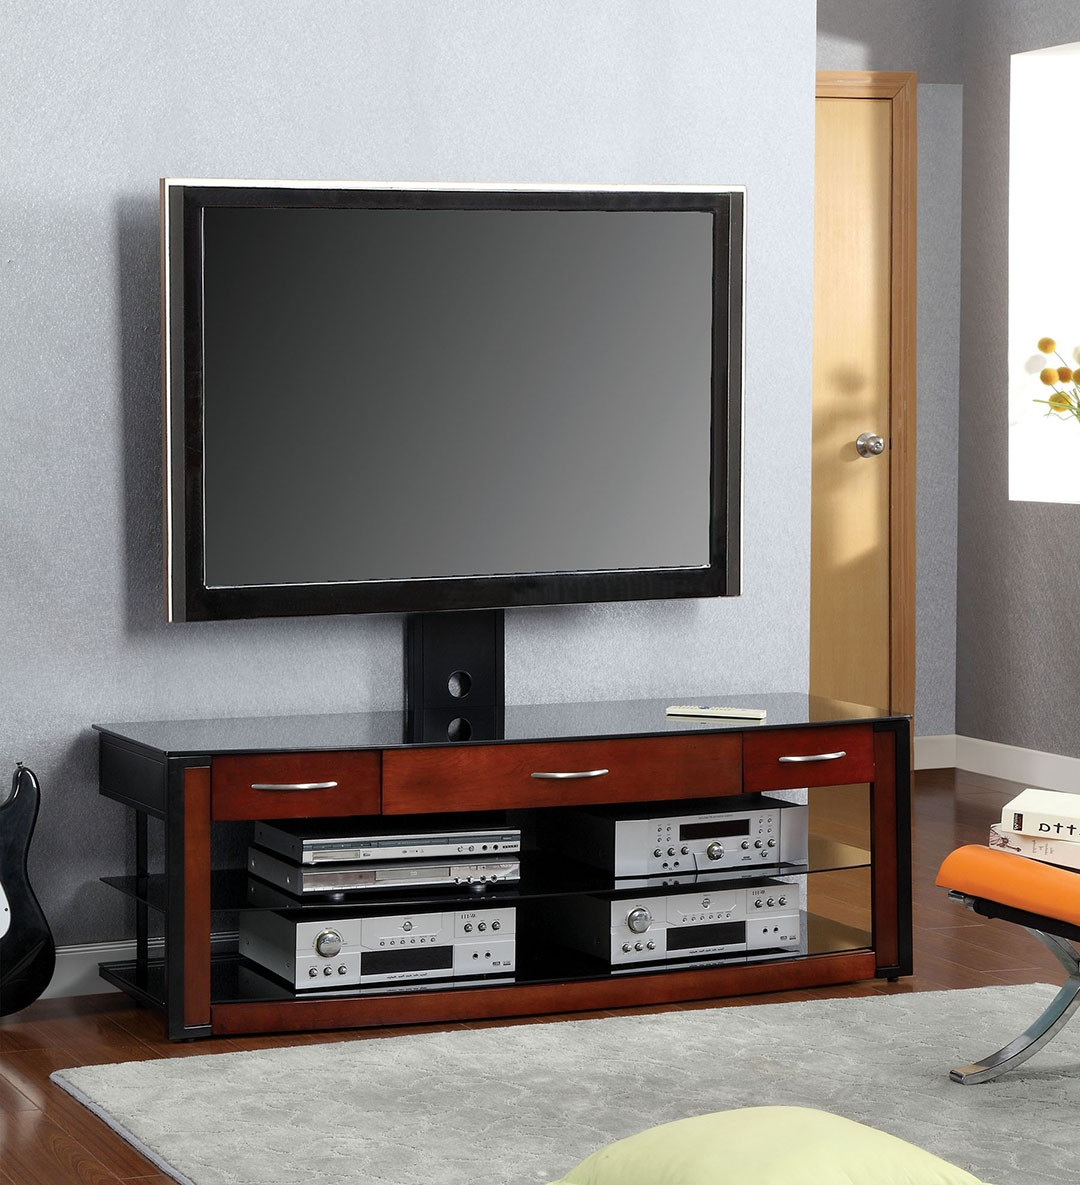 Rectangular Tv Stands Regarding Fashionable Rectangular Wooden Tv Stand With Mount And Glass Shelves For (Gallery 15 of 20)